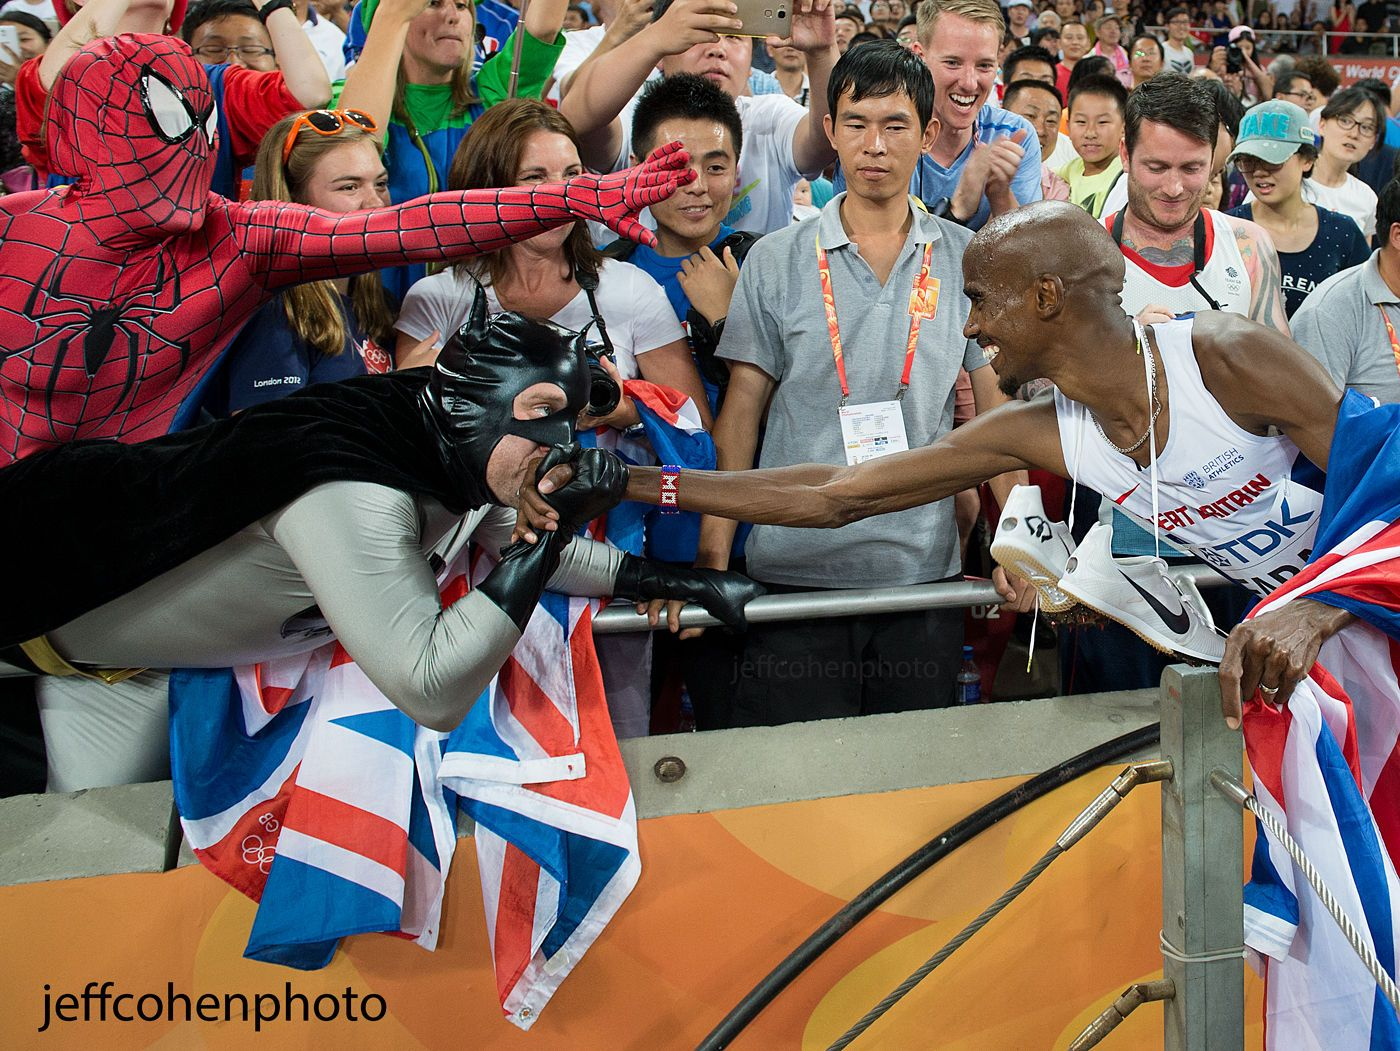 1beijing2015_night_8_mo_farah_500m_batman__jeff_cohen_photo_31247_web.jpg